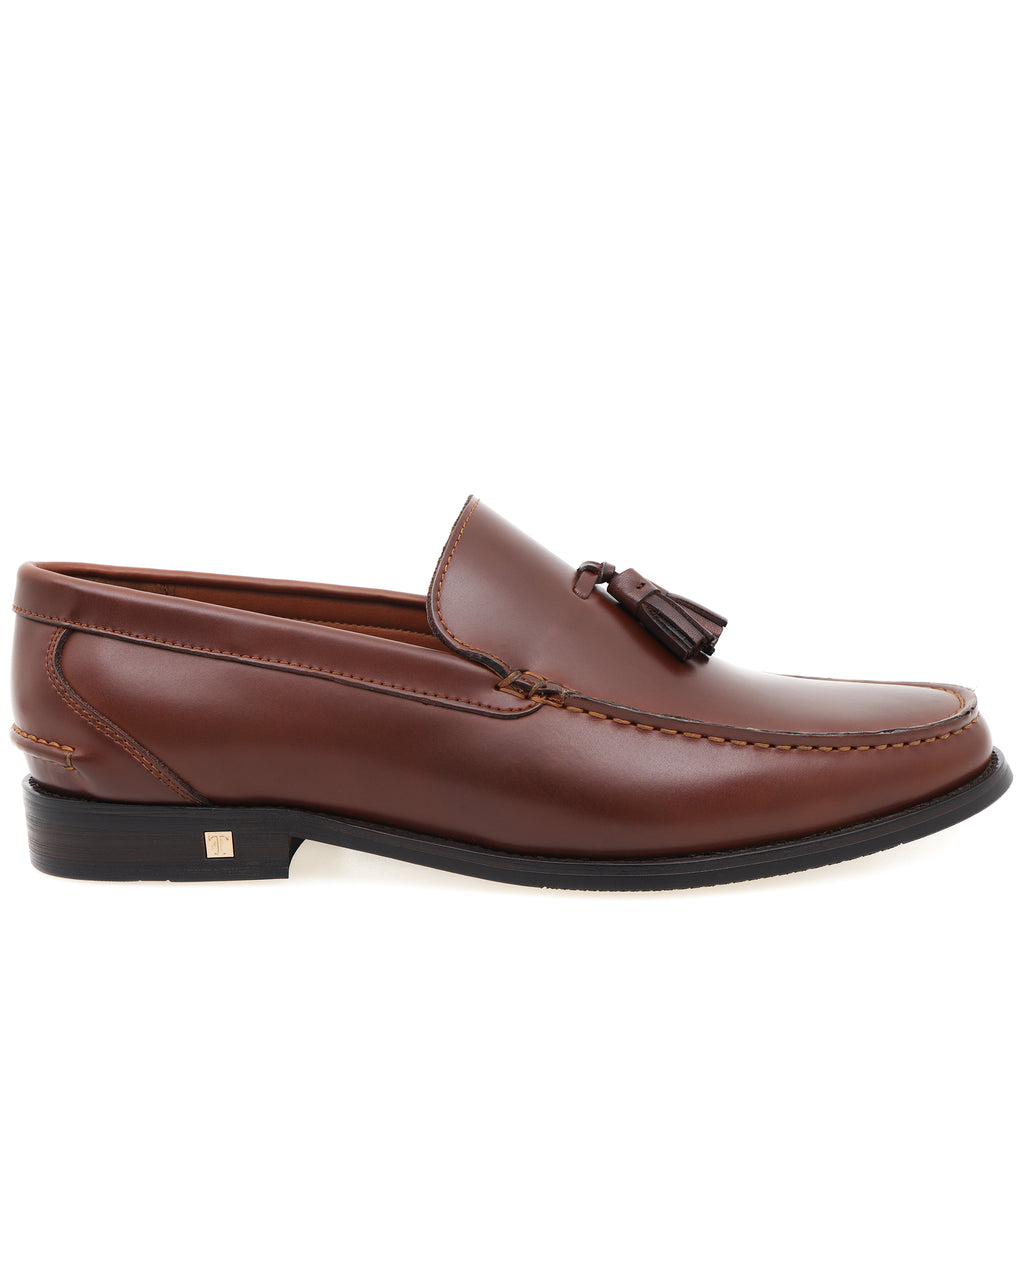 Tomaz F278 Double Tassel Loafers (Brown)